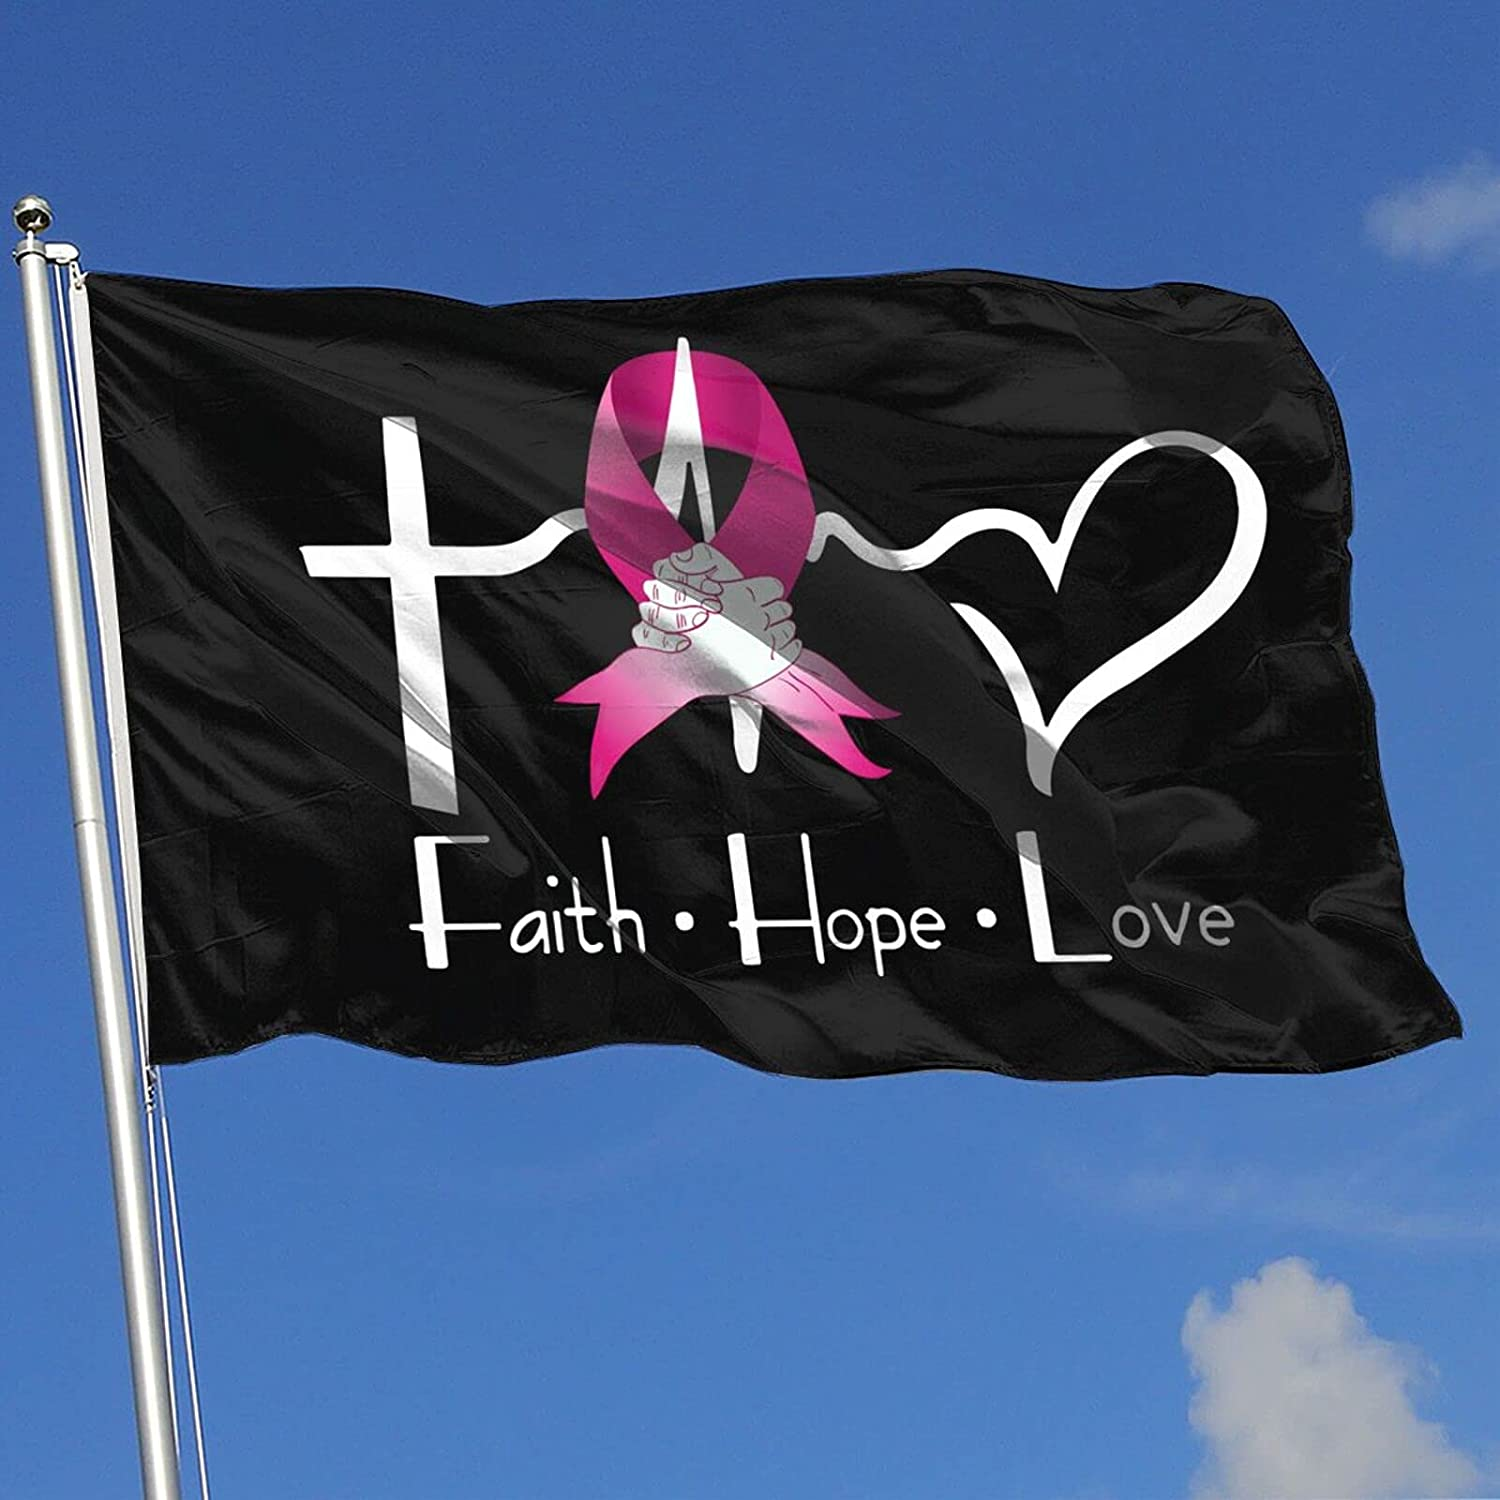 3x5 Ft Faith Hope Love Breast Cancer Awareness Flags Garden Flags Home Indoor & Outdoor Welcome Decorations,Yard Decorative Family Party Banner